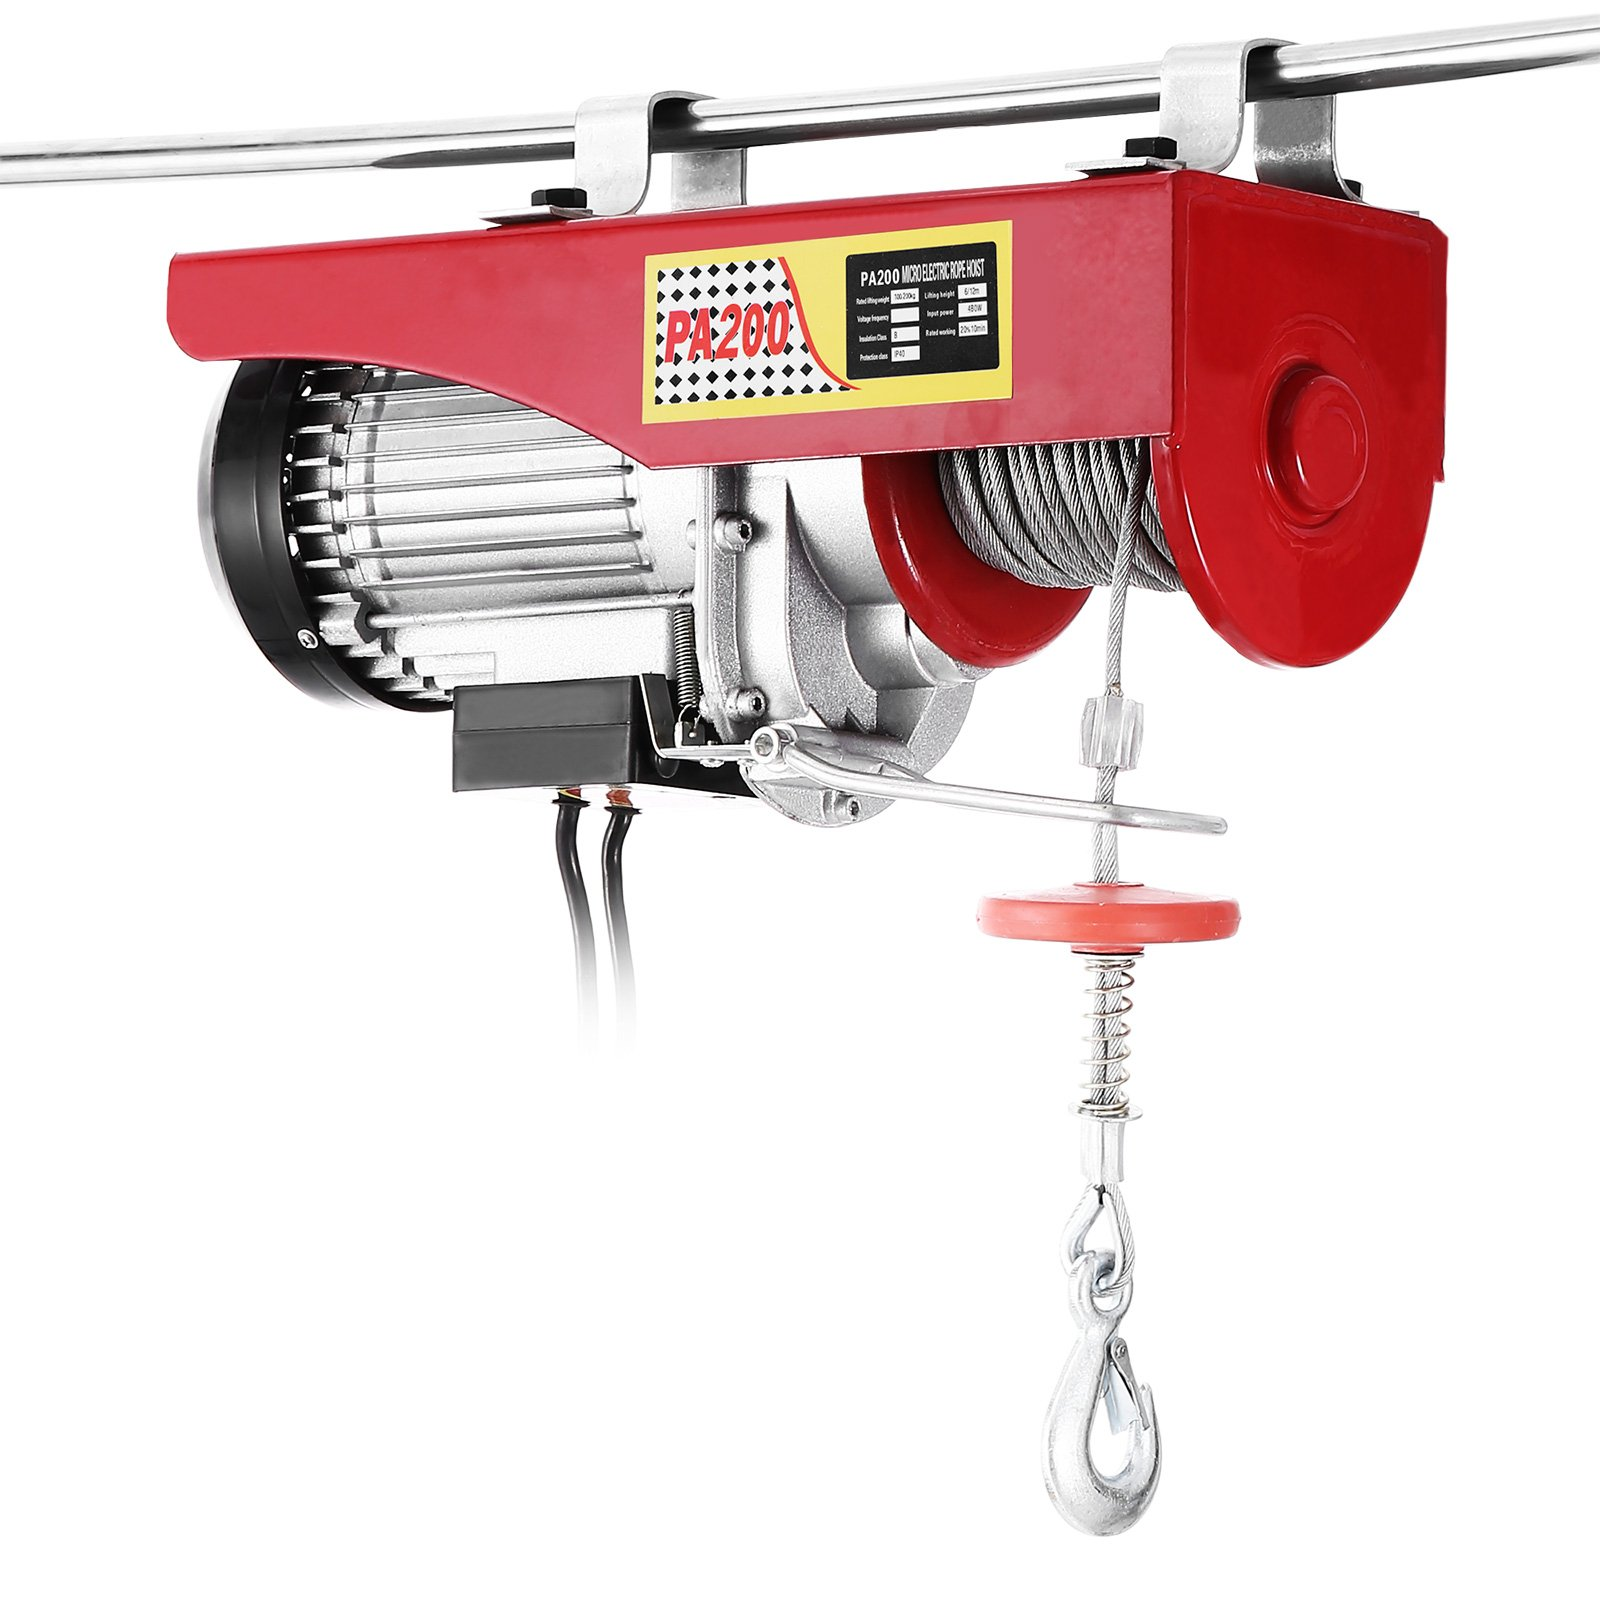 Popsport Electric Hoist 440LBS Electric Hoist Crane 110V 450W Lift Electric Hoist Crane Overhead Garage Winch with Hand Control Auto Lift (440LBS)